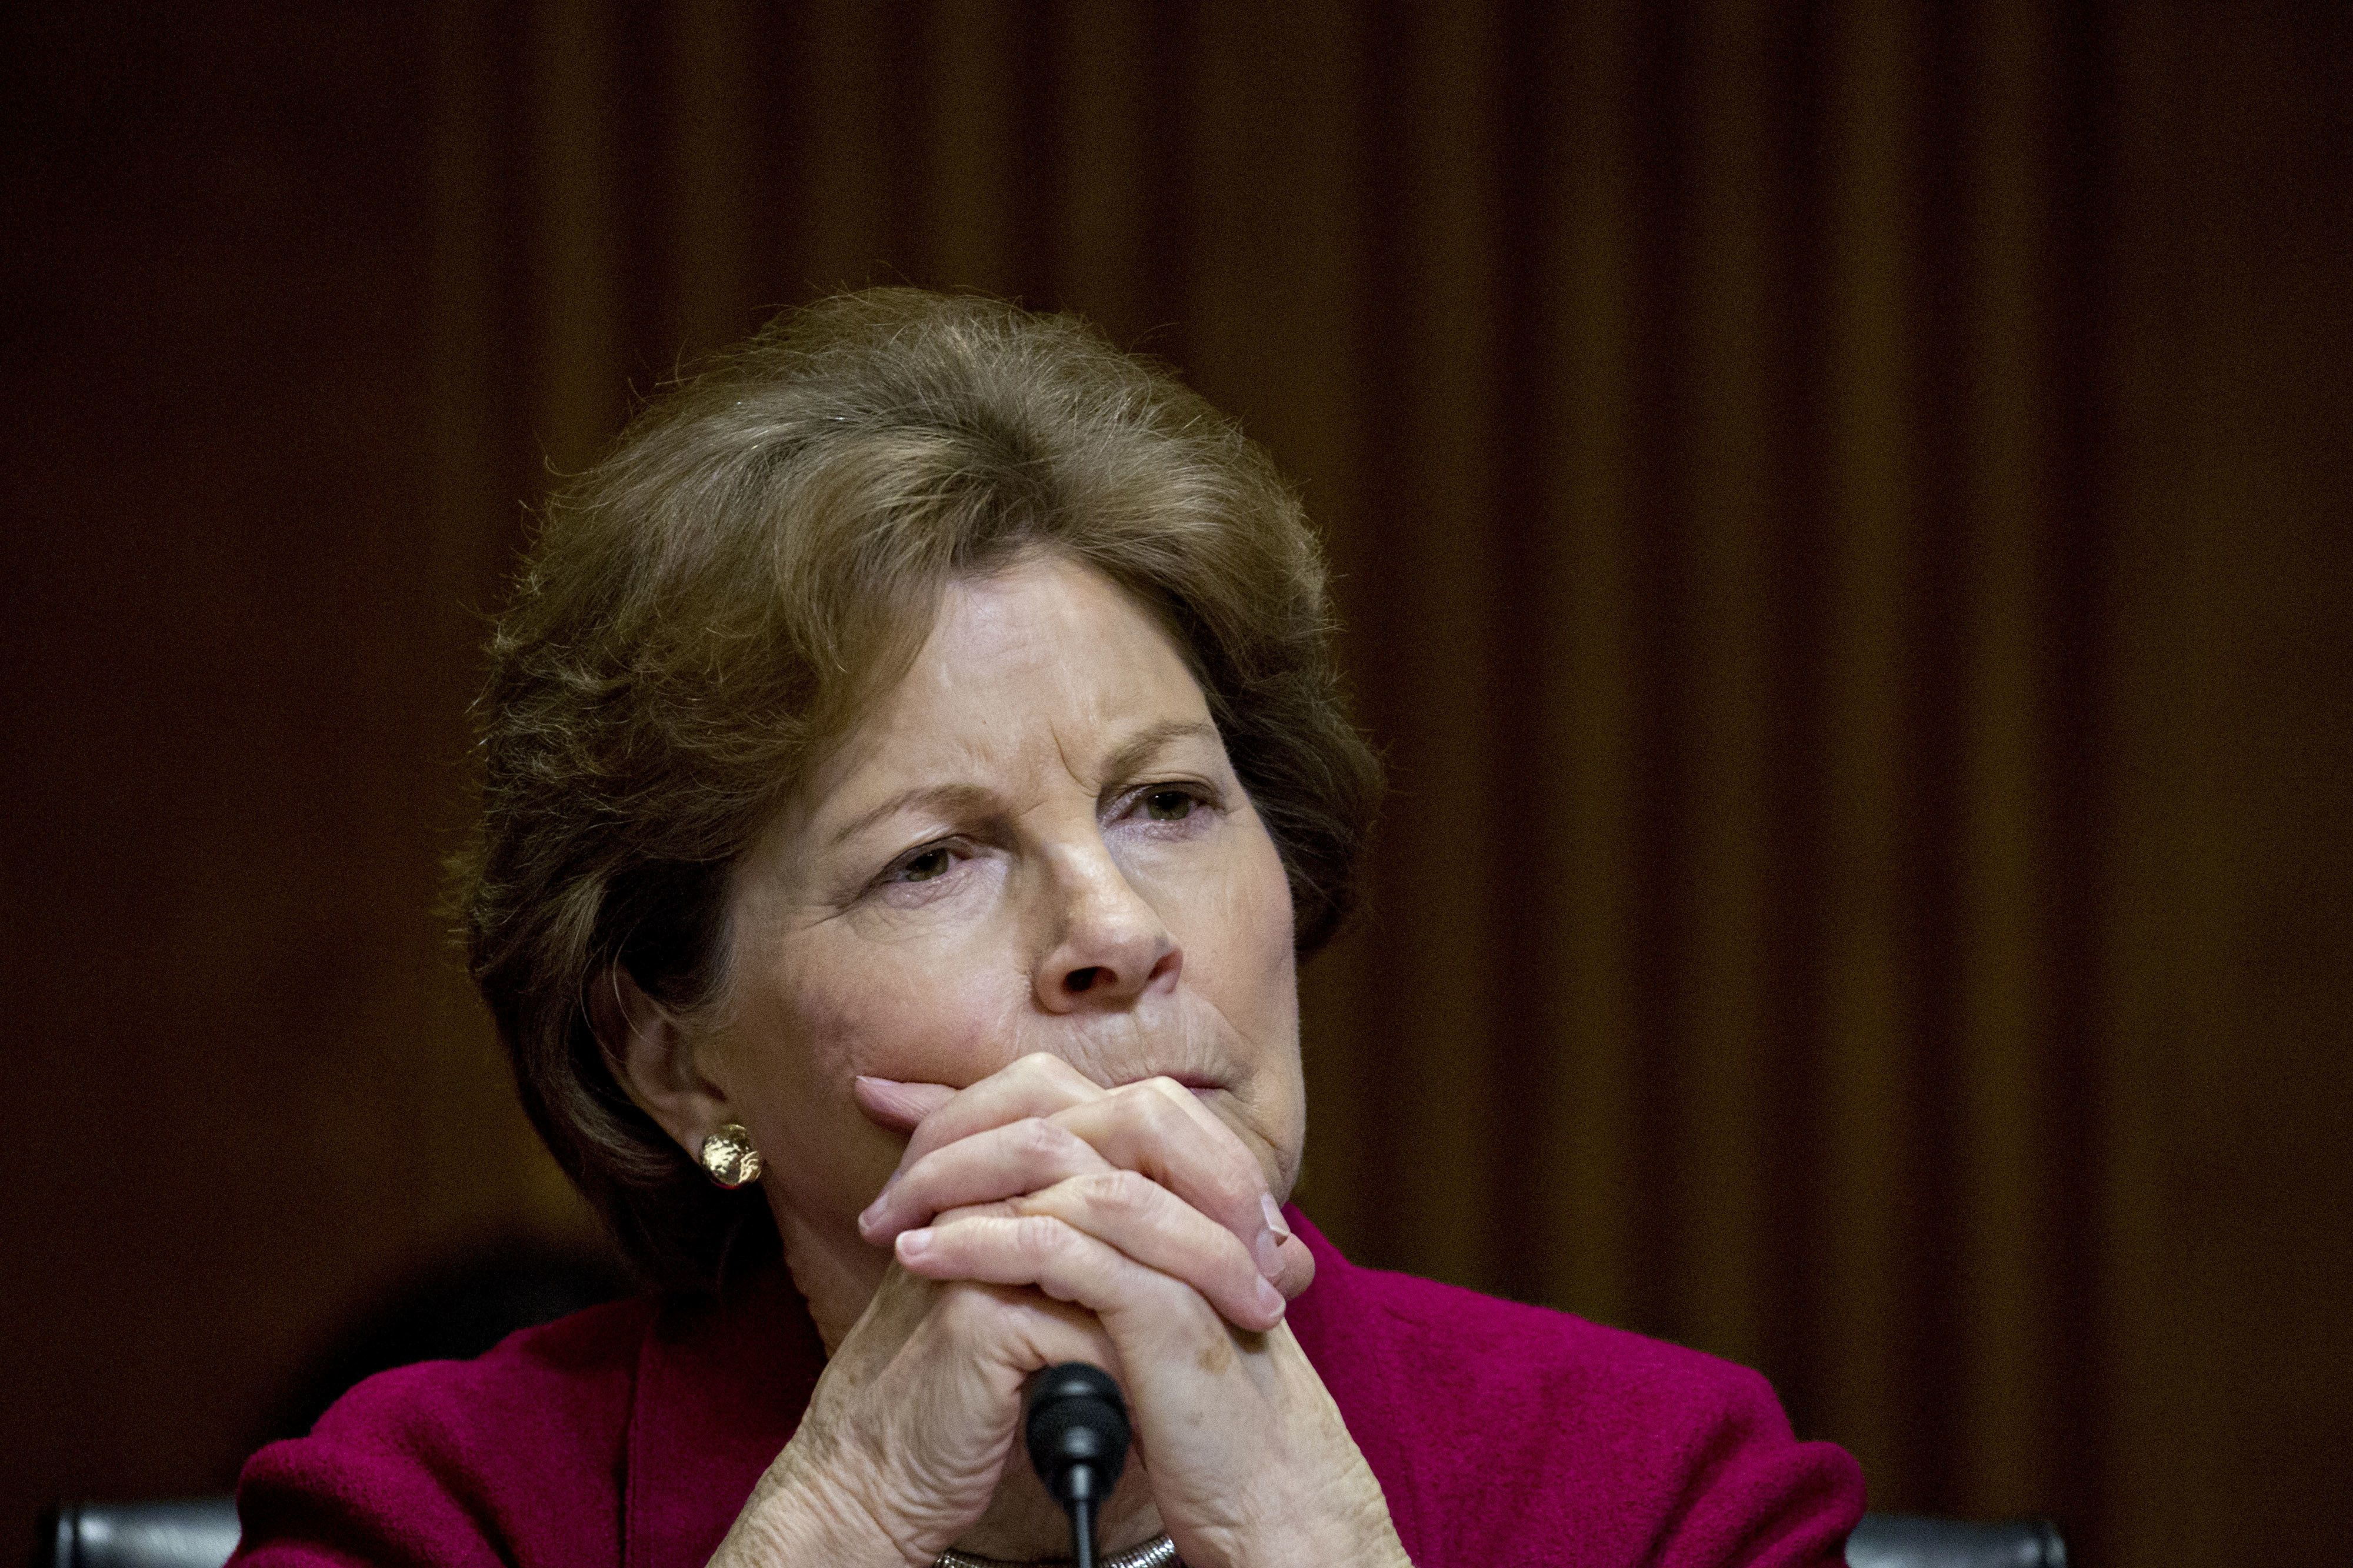 Senator Jeanne Shaheen, a Democrat from New Hampshire, listens during a Senate Foreign Relations Committee confirmation hearing for Michael Pompeo, director of the Central Intelligence Agency (CIA) and U.S. secretary of state nominee for President Donald Trump, not pictured, in Washington, D.C., U.S., on Thursday, April 12, 2018. Pompeo was pressed by Senators to give the president independent advice on foreign policy hot spots should he be confirmed as the next secretary of state. Photographer: Andrew Harrer/Bloomberg via Getty Images